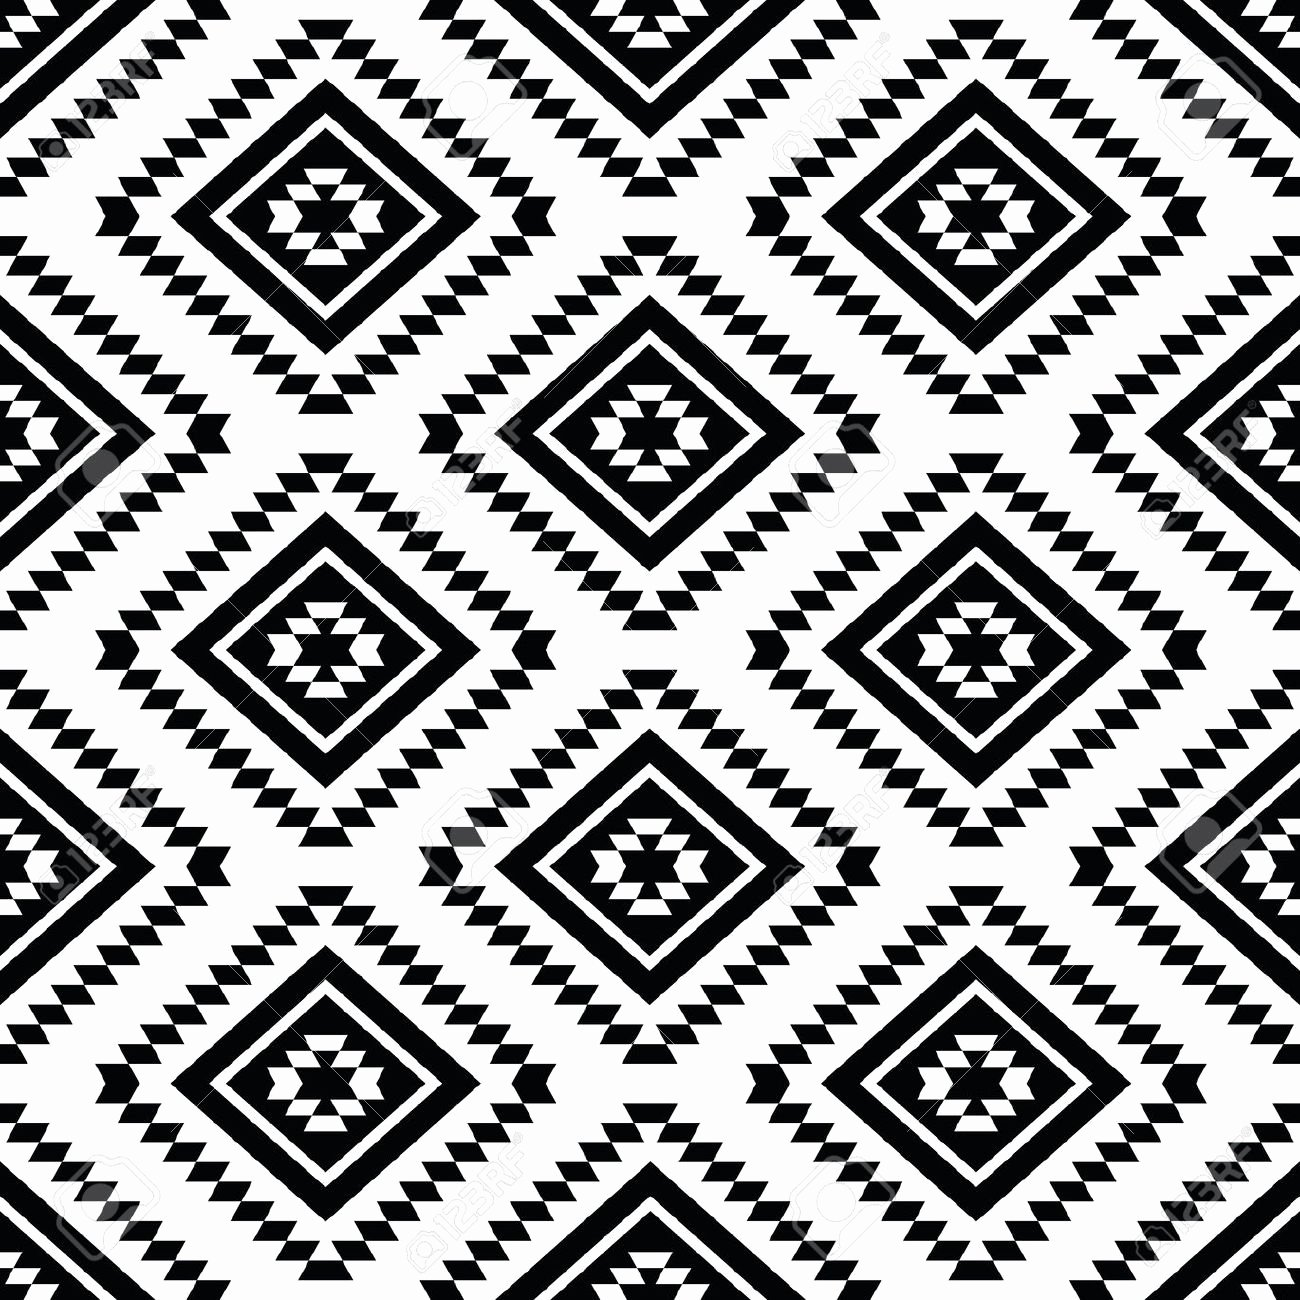 Black and White Pattern Beautiful 27 Best Aztec Patterns Wallpapers